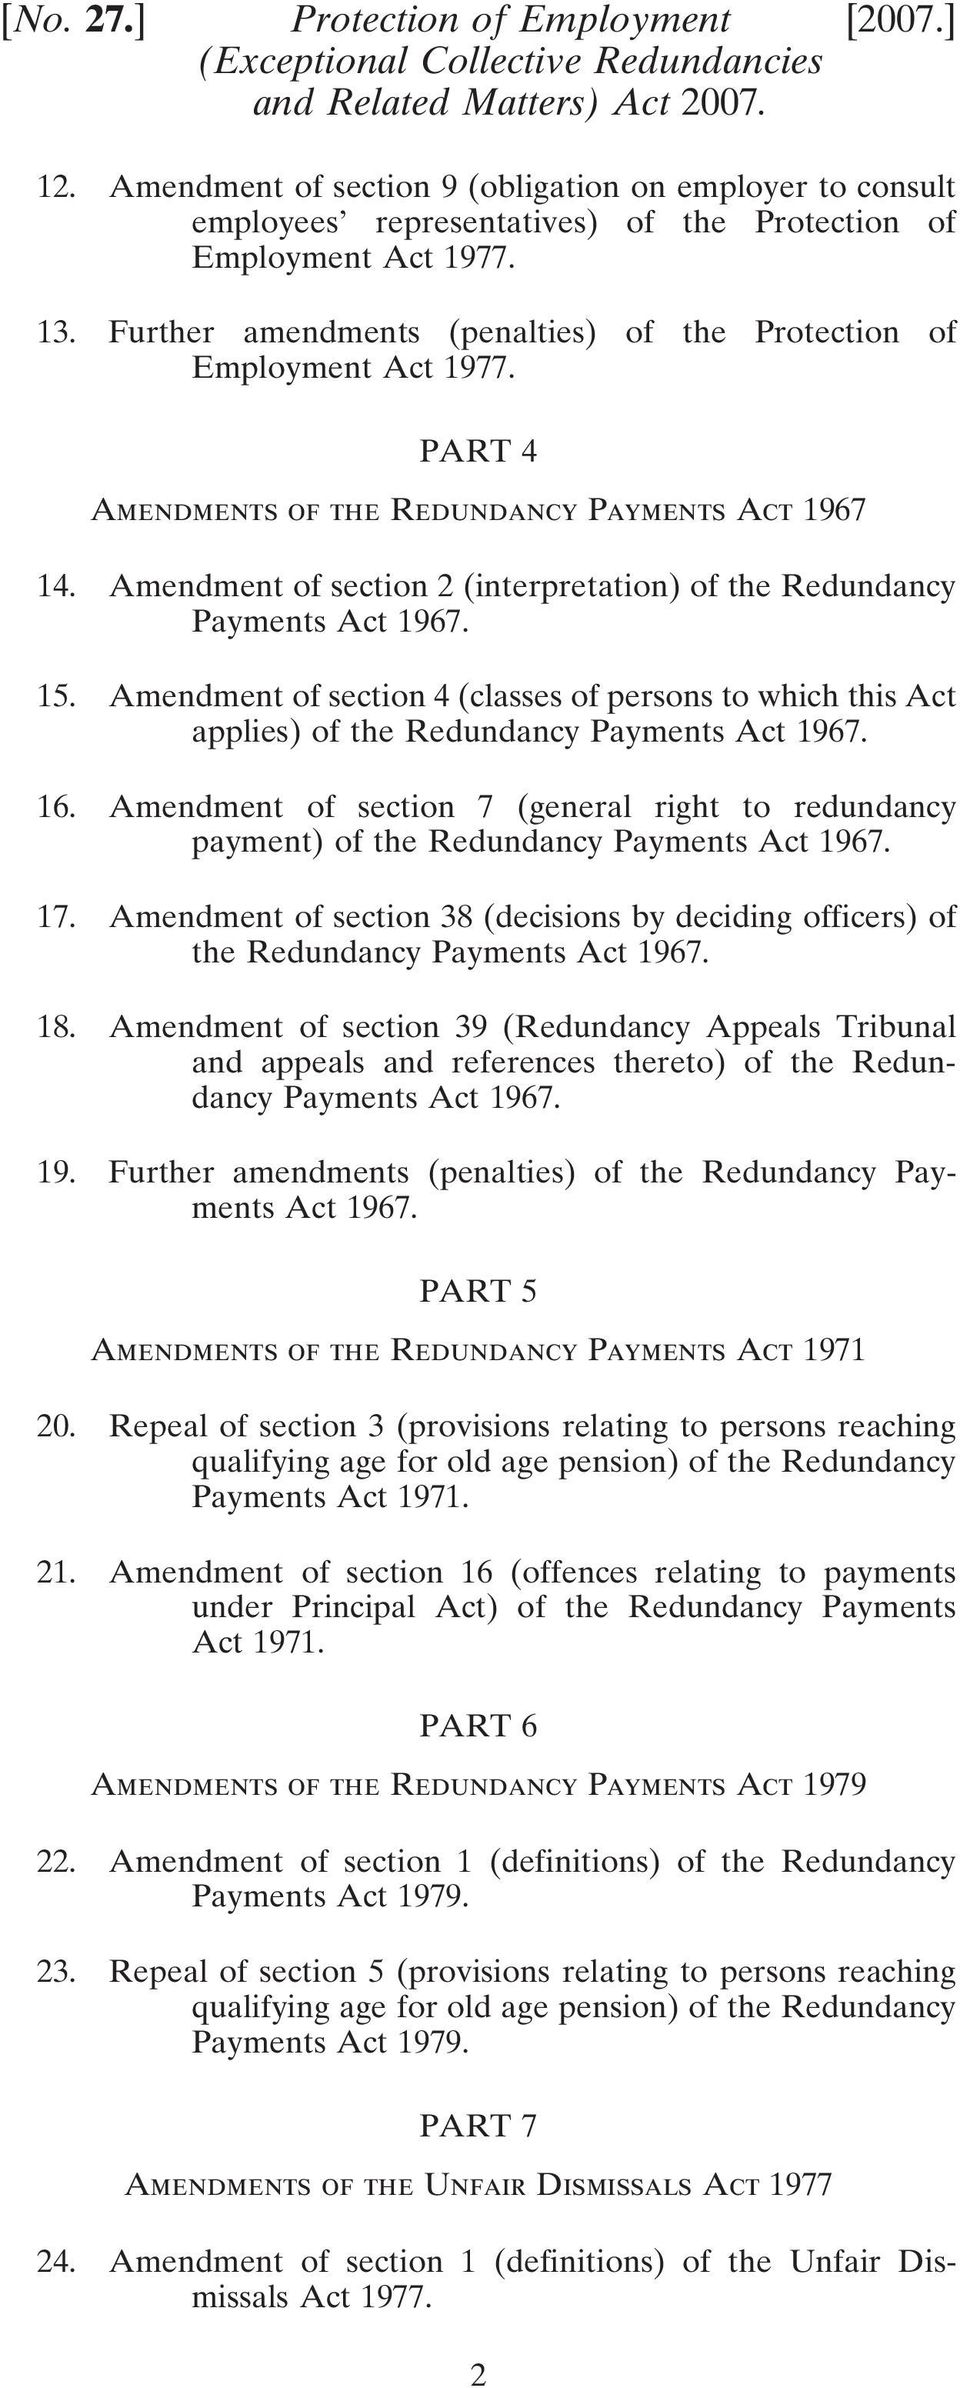 section 4 (classes of persons to which this Act applies) of the Redundancy Payments Act 1967. 16. section 7 (general right to redundancy payment) of the Redundancy Payments Act 1967. 17.